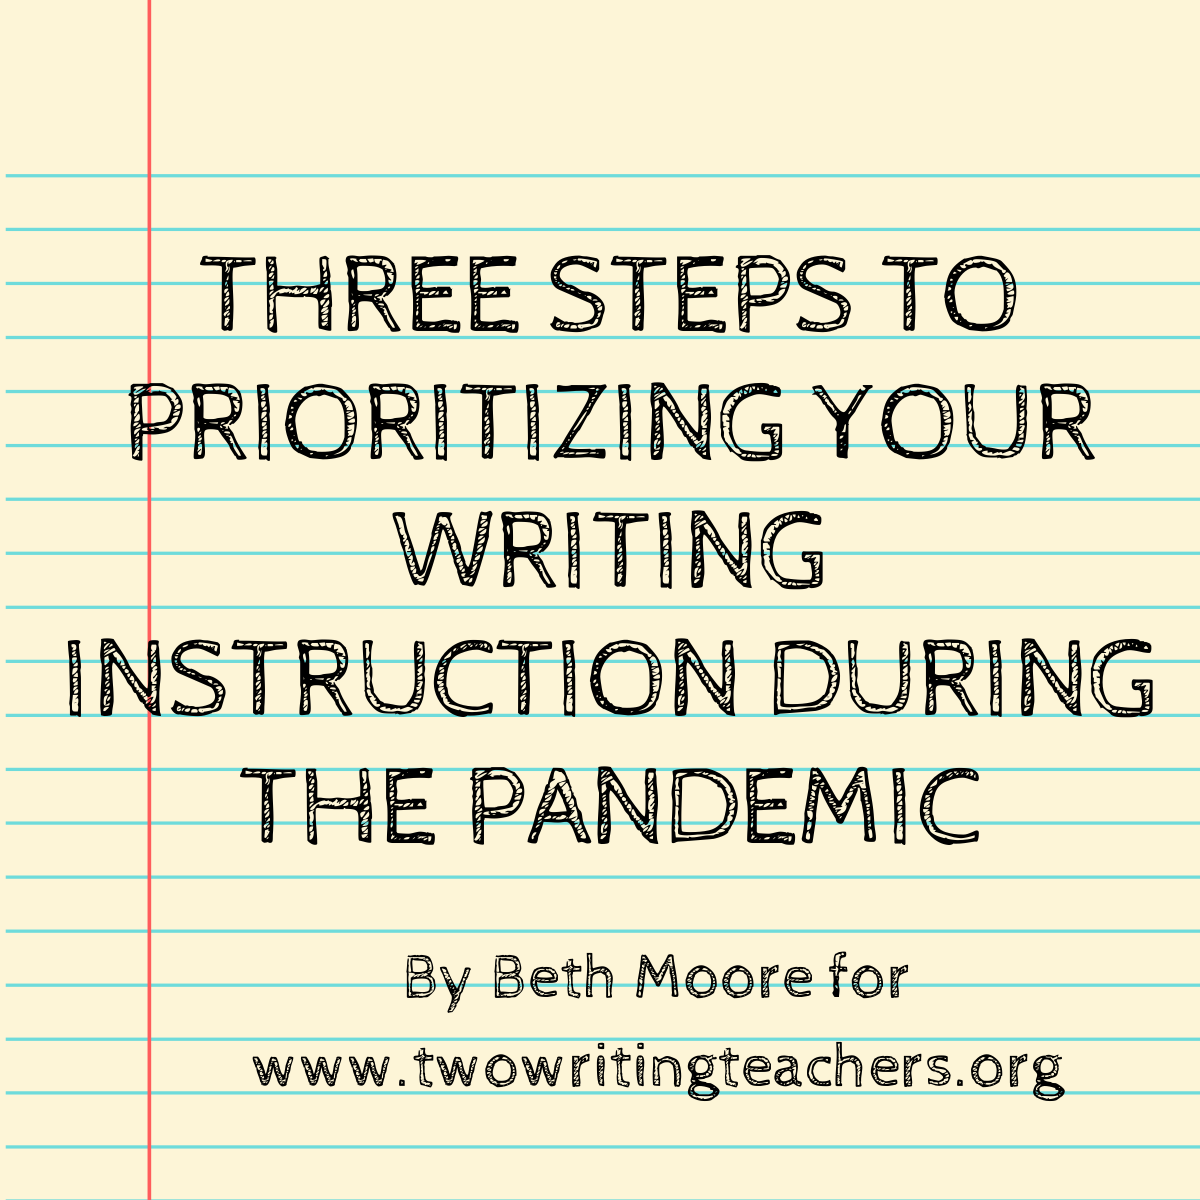 Three Steps to Prioritizing Your Writing Instruction During the Pandemic